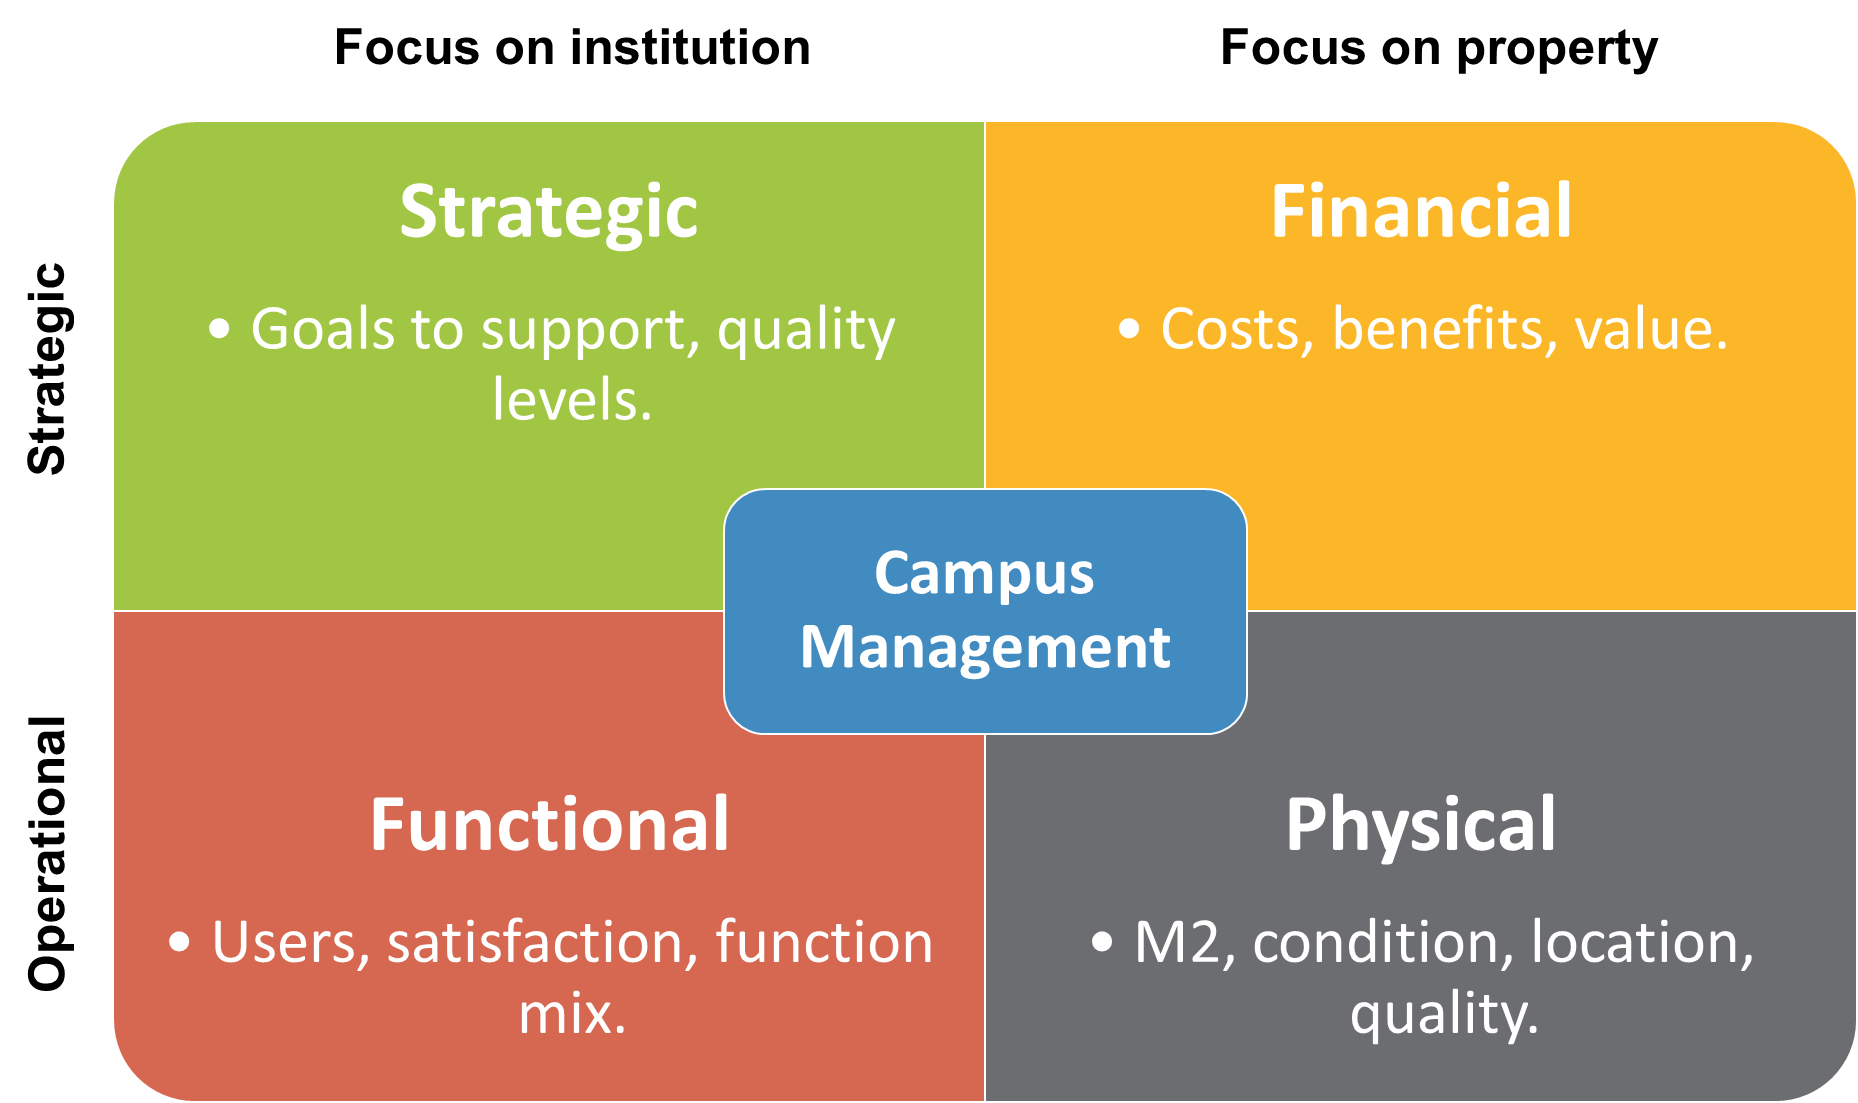 Campus Management Master Plan and Trends